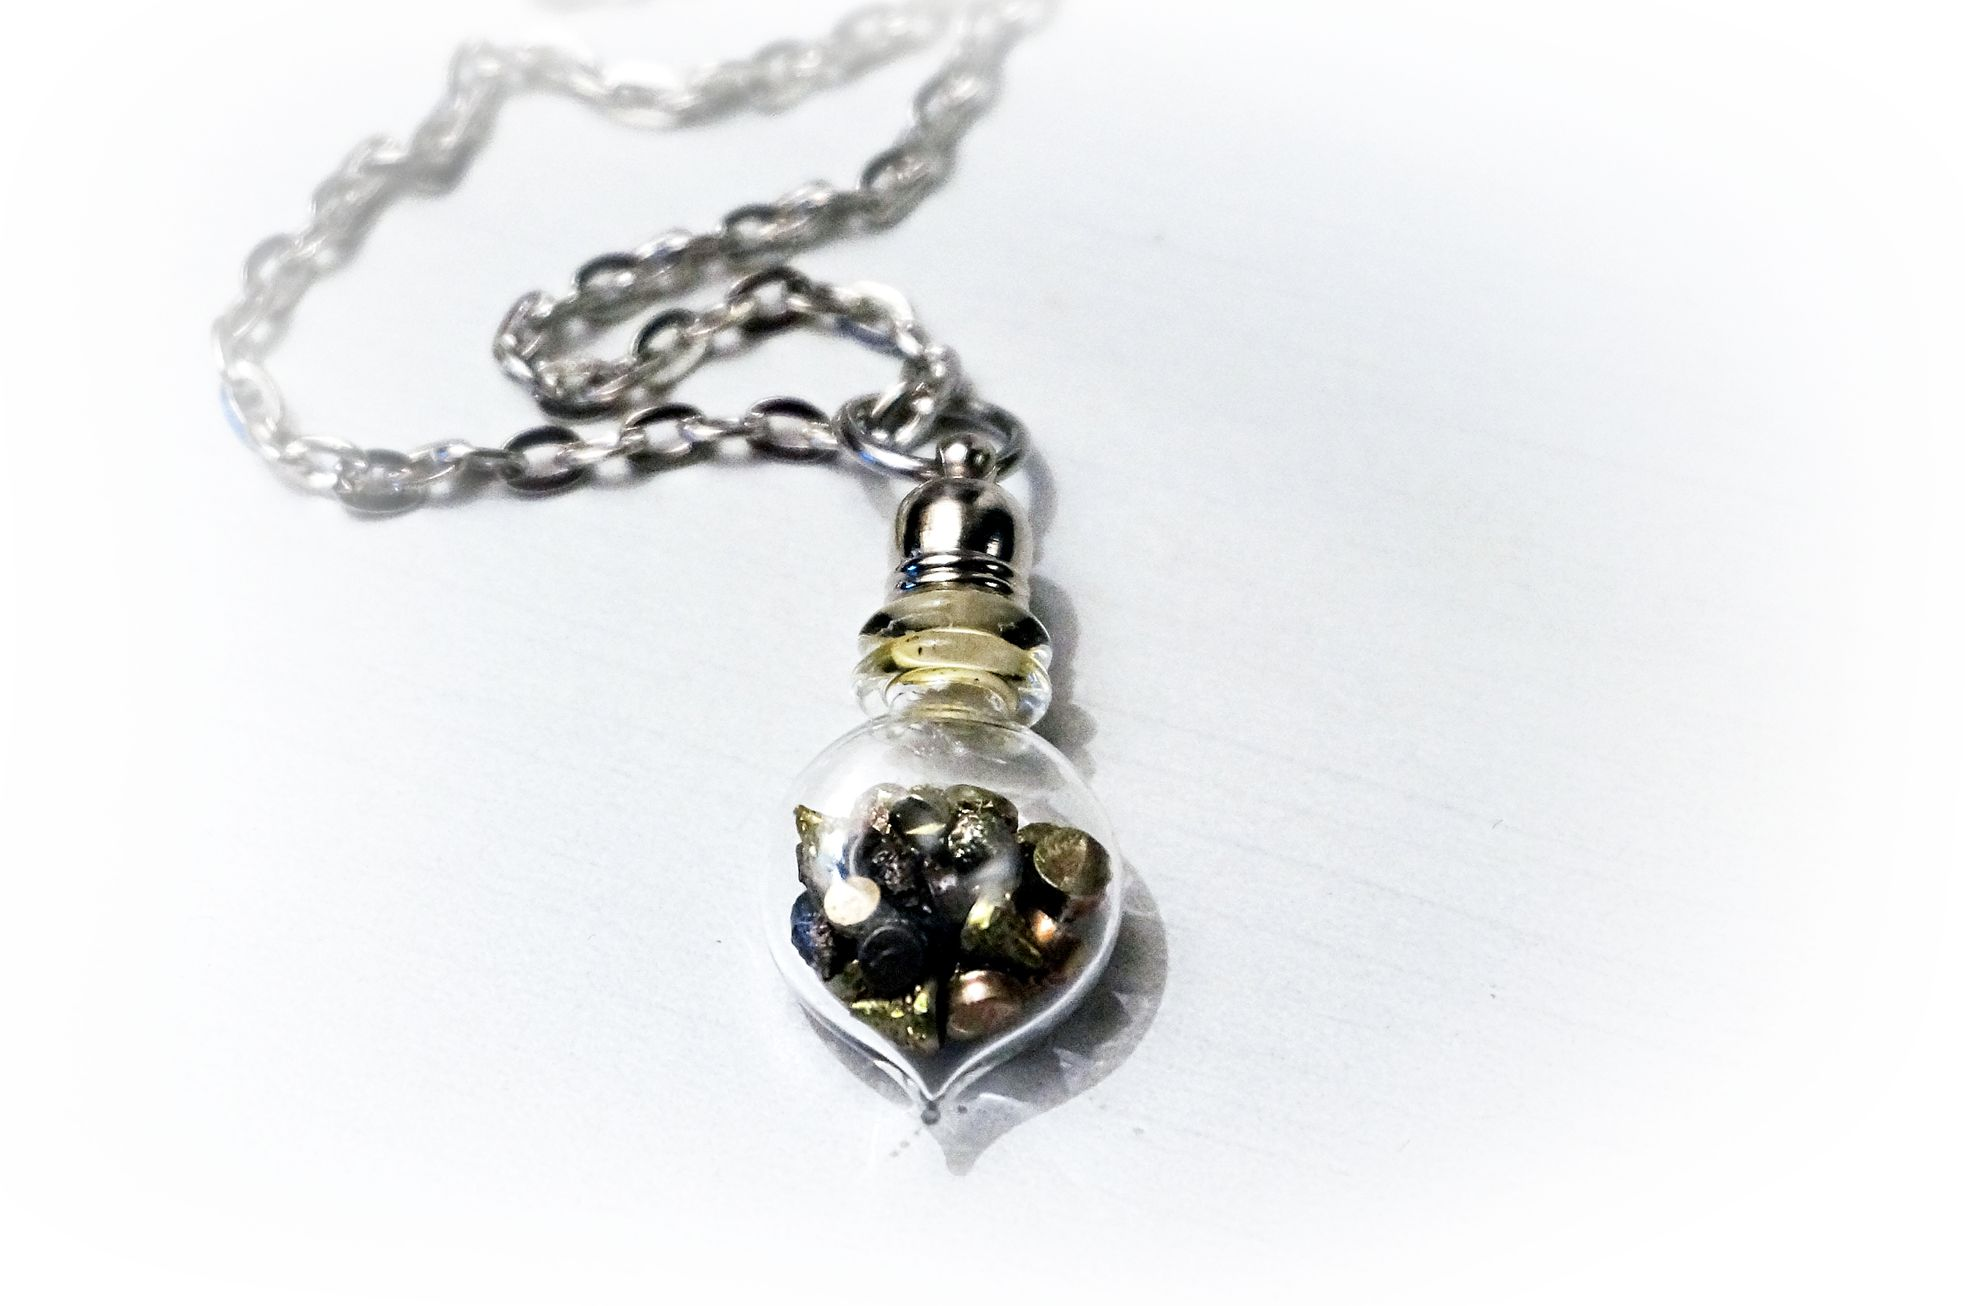 Steampunk BDSM submissive collar bottle necklace pendant